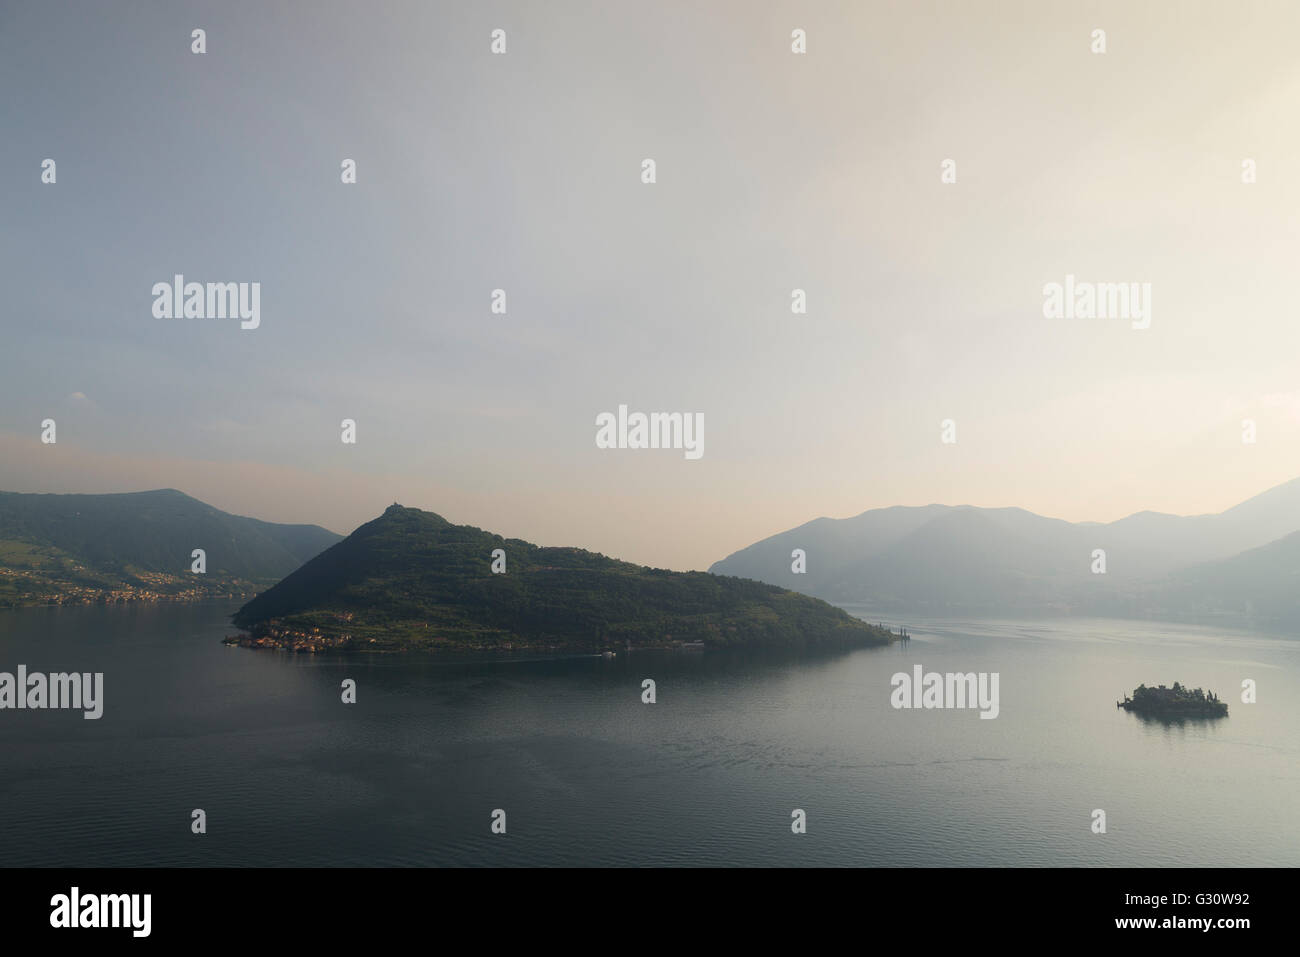 The islands of Monte Isola and Isola di Loreto at Lake Iseo with surrounding mountains and a glowing sky at sunset Stock Photo